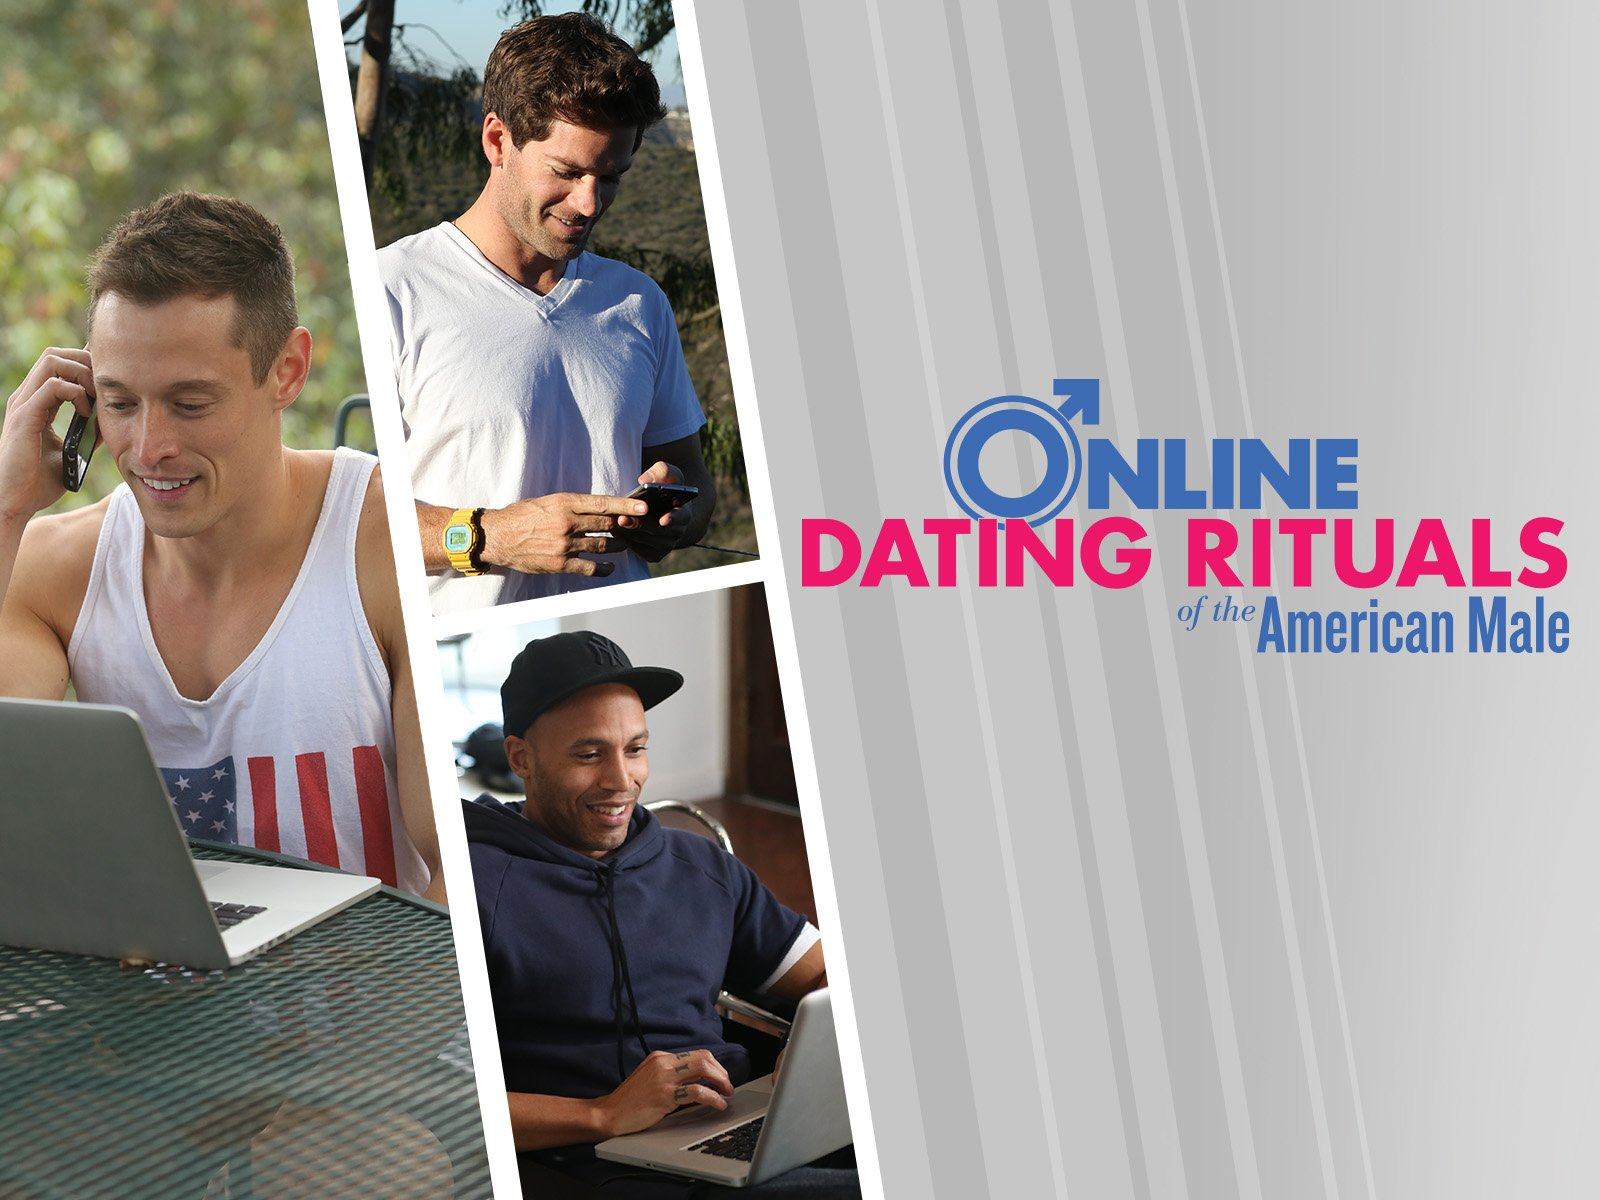 What website does online hookup rituals use